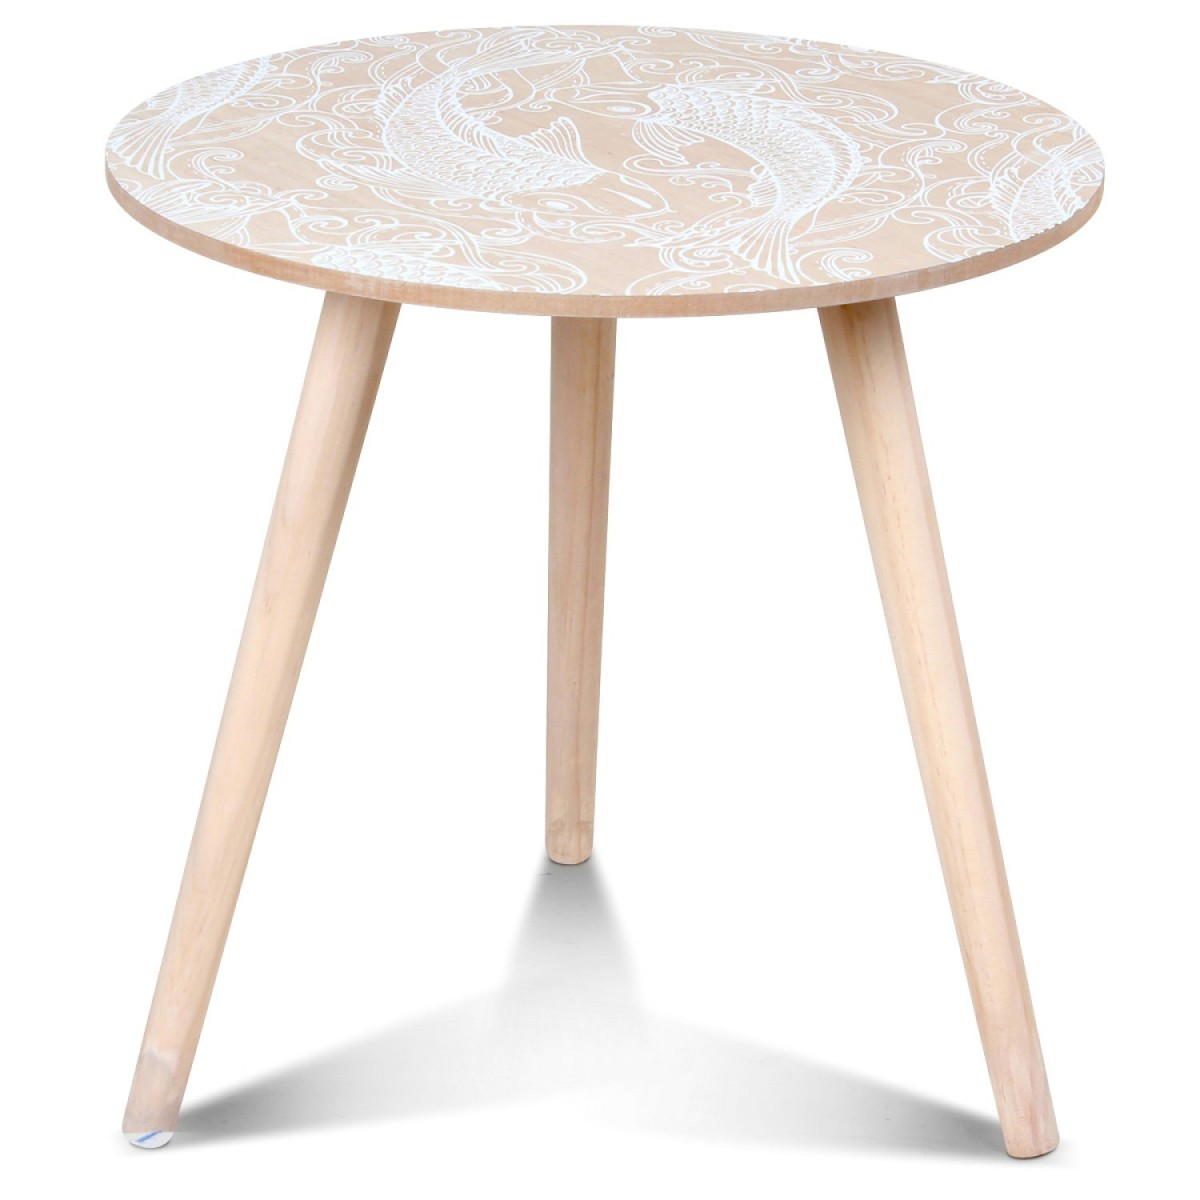 Table D Appoint Blanche Table D 39appoint Oucham Blanc Lemobilier Ma